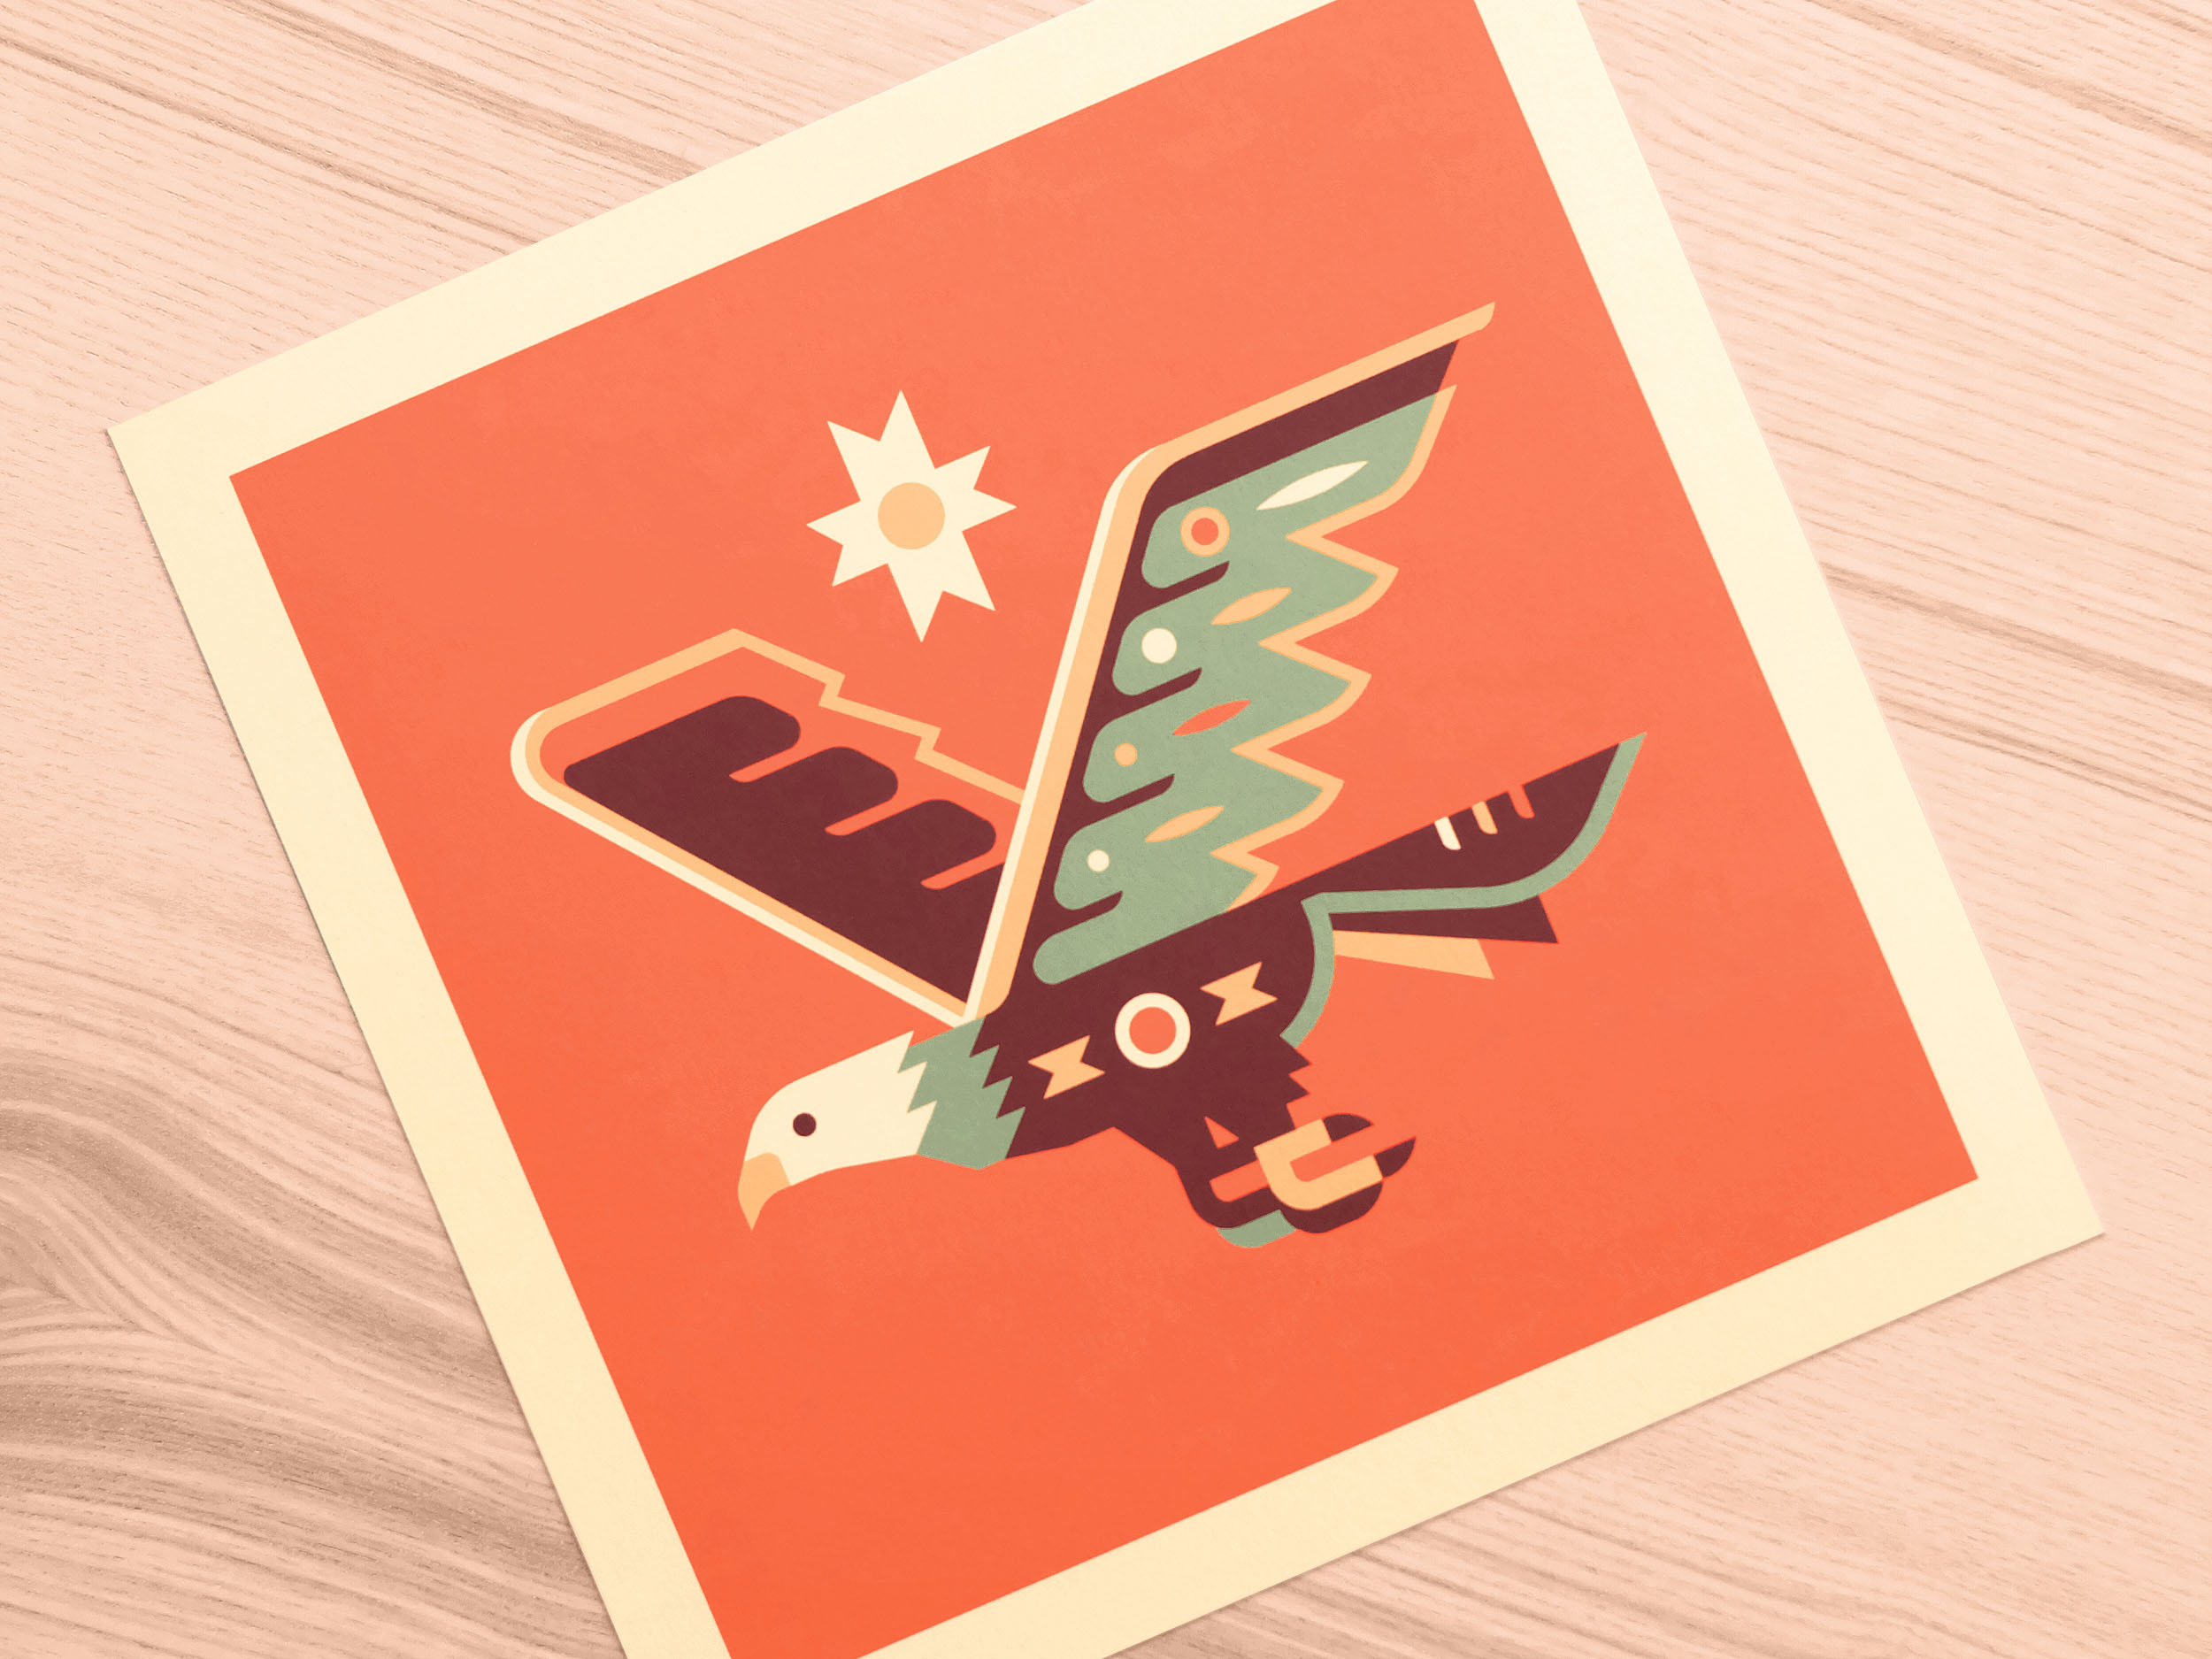 Eagle totem print photo by Matt Anderson and Canopy Design. Limited color, geometric pattern illustration with Navajo southwest art style.